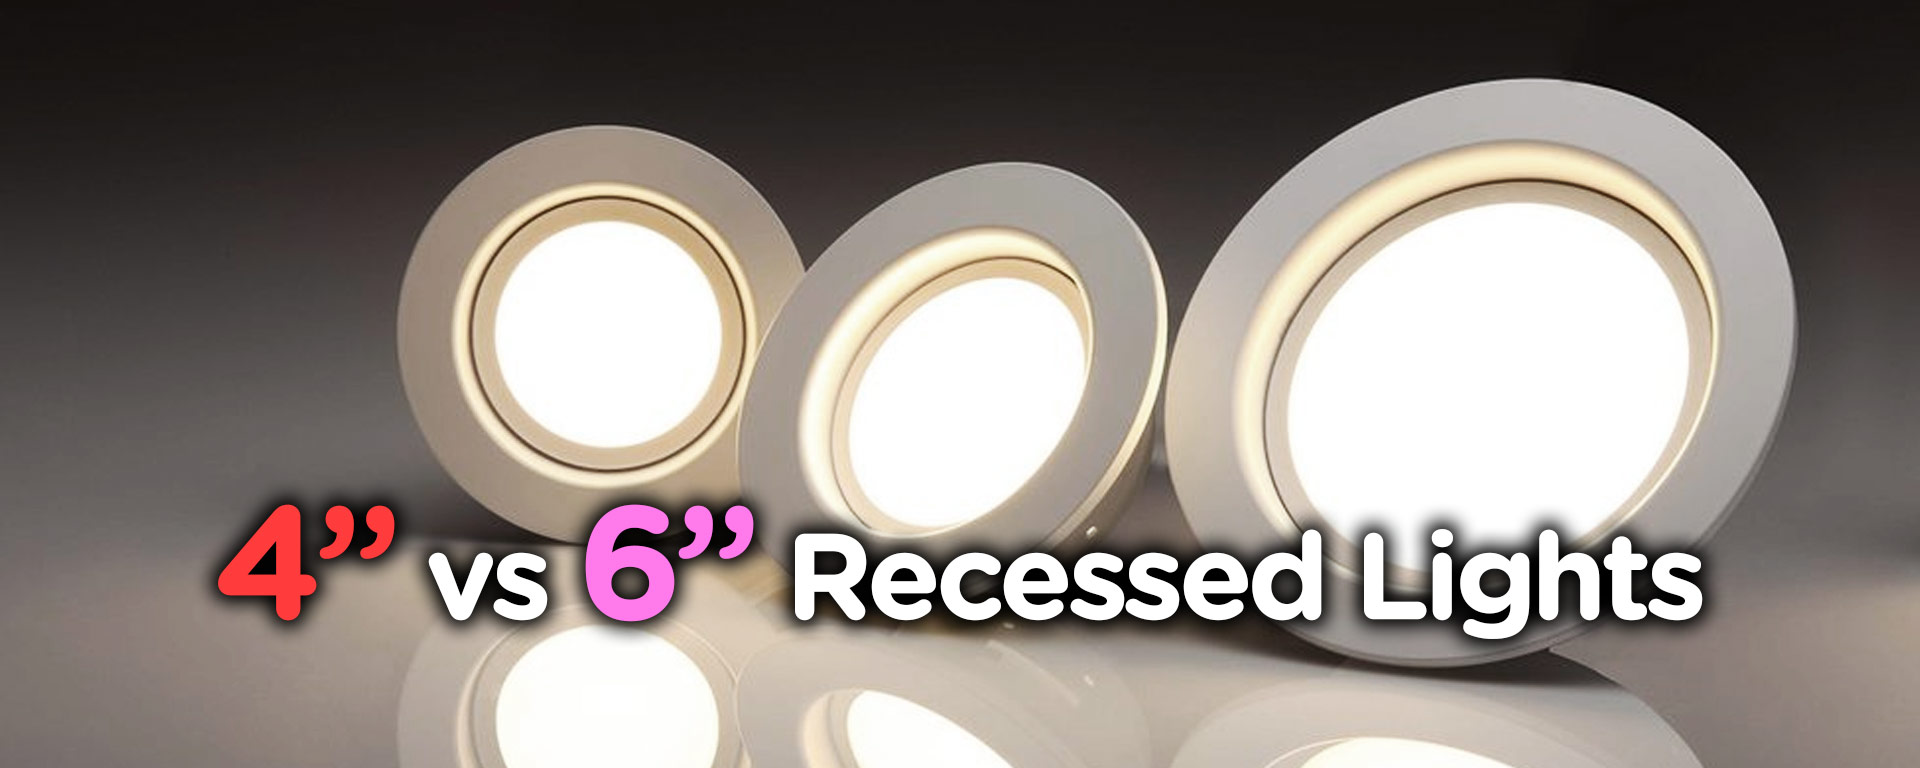 4 Inch Vs 6 Recessed Lighting